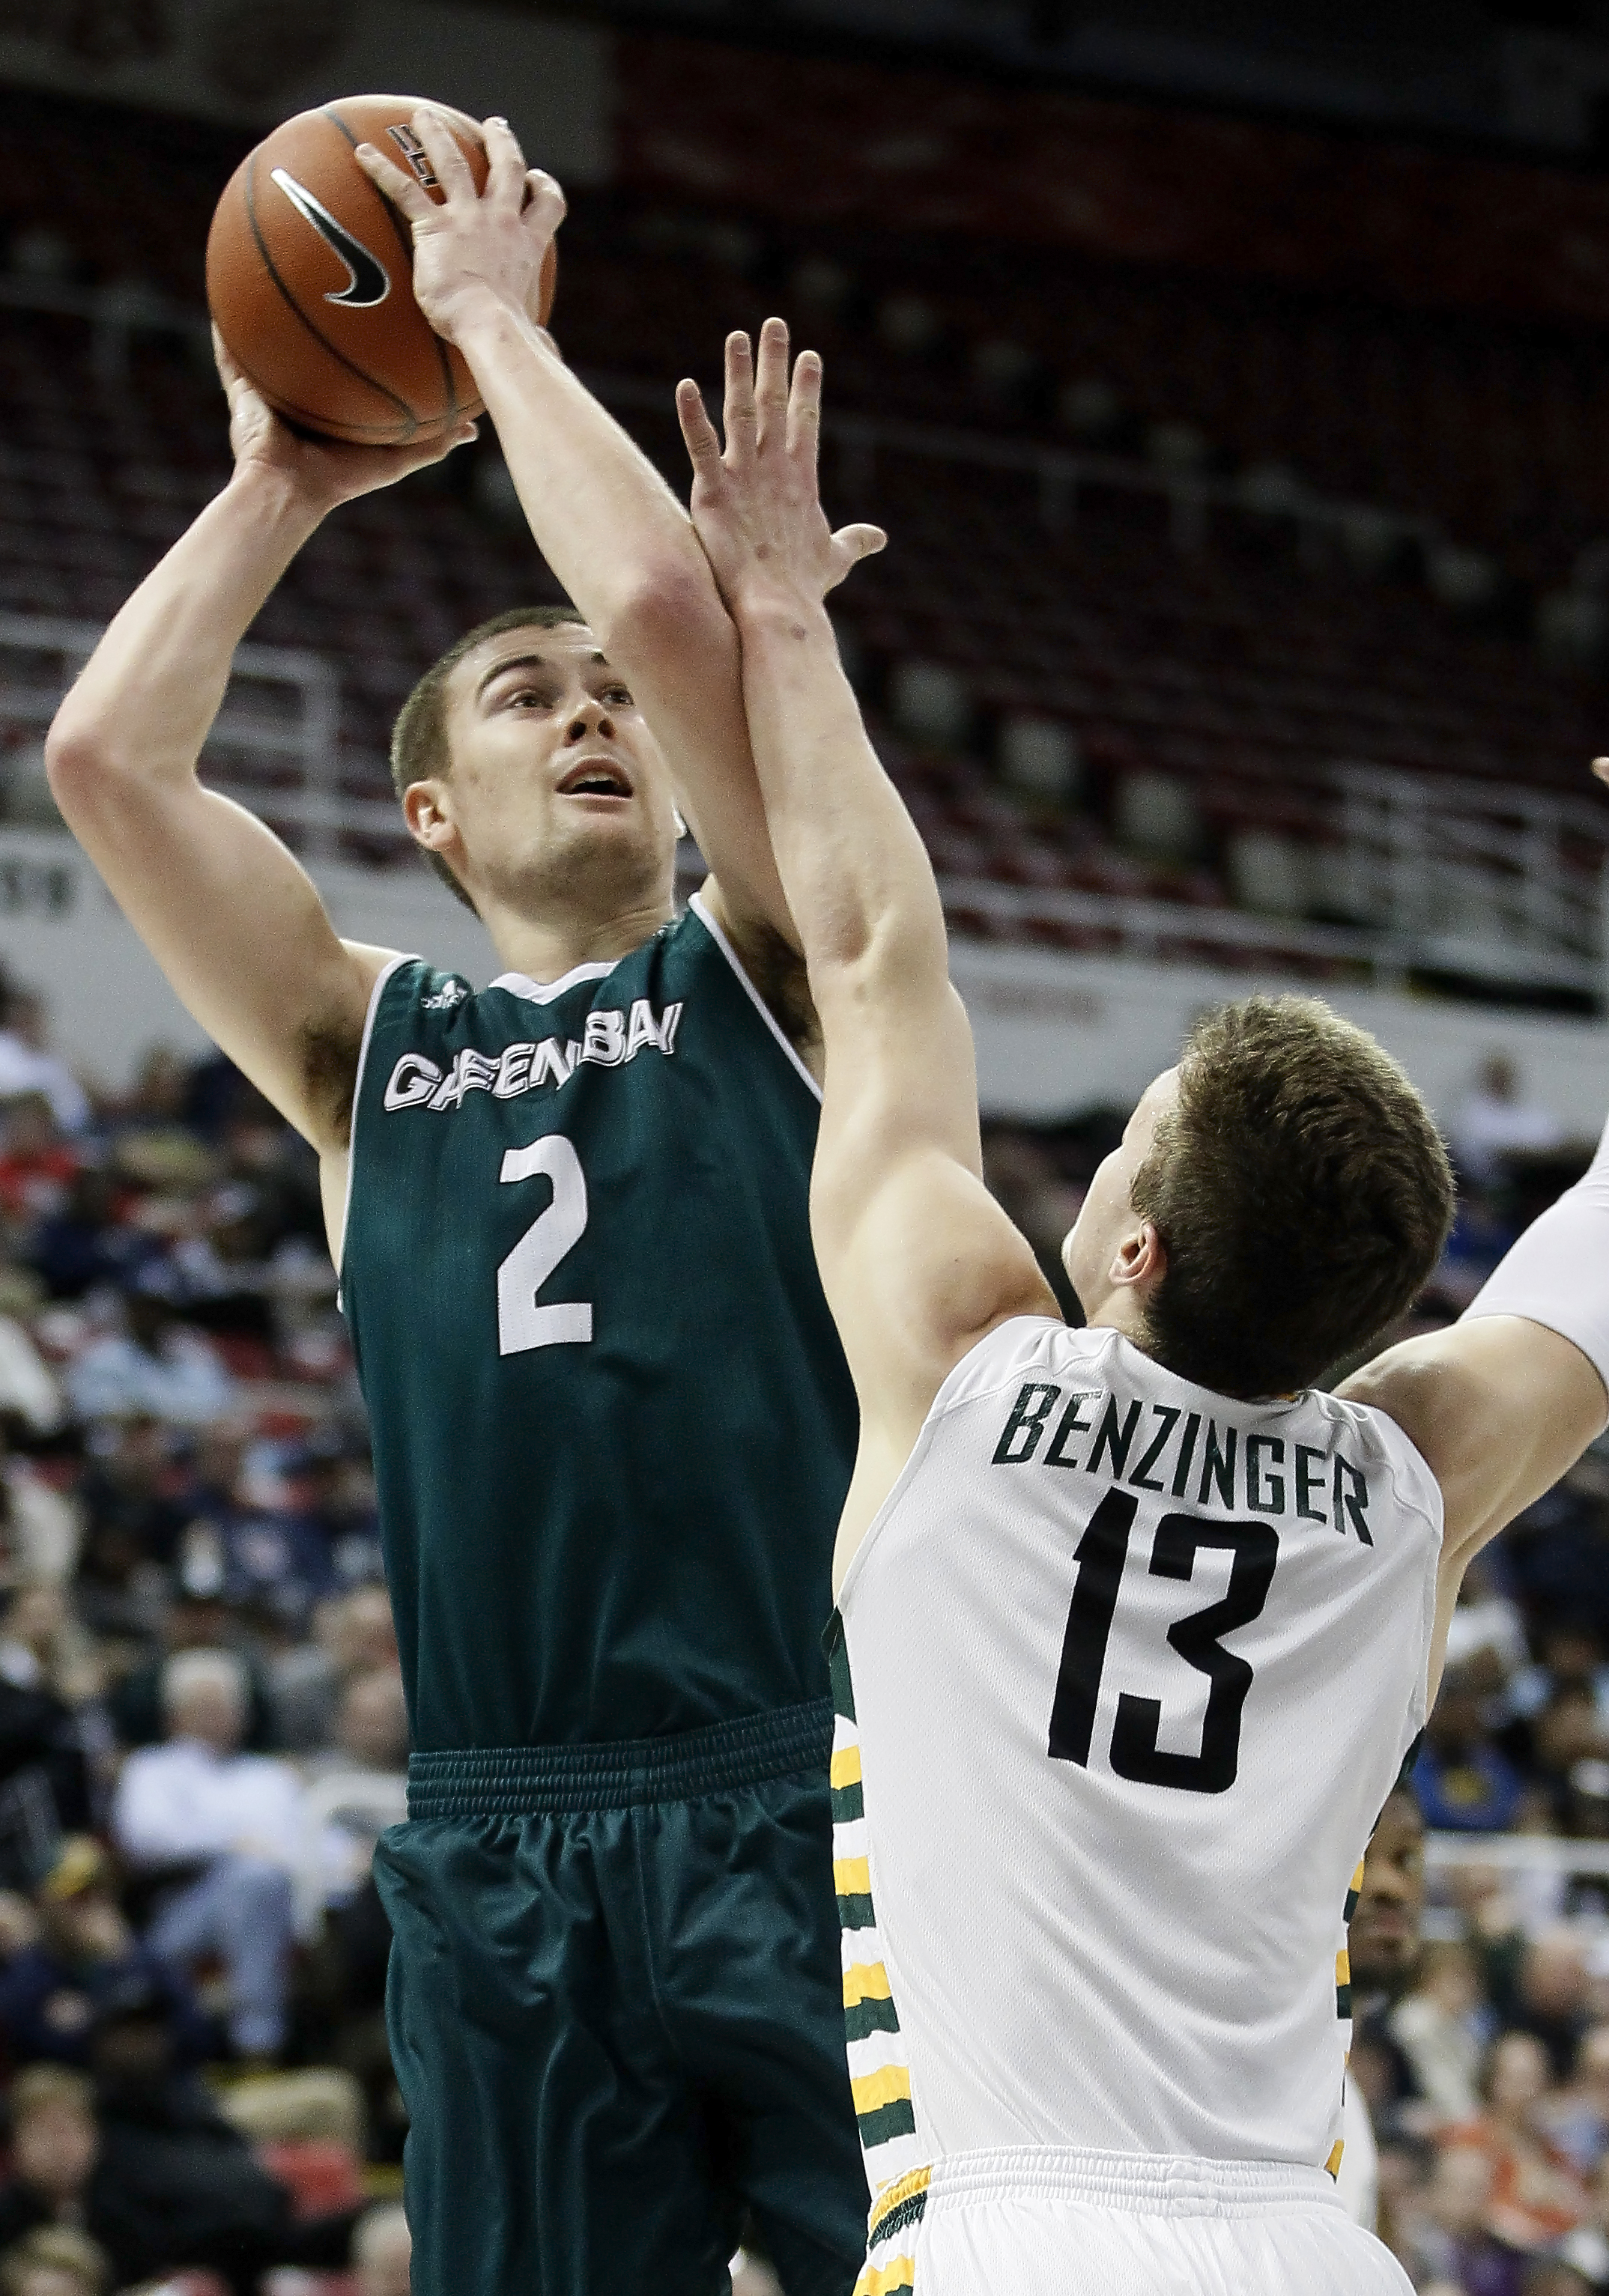 Green Bay's Turner Botz (2) takes a shot against Wright State's Grant Benzinger (13) during the first half of an NCAA college basketball game for the Horizon League men's tournament championship, Tuesday, March 8, 2016, in Detroit. (AP Photo/Duane Burleso